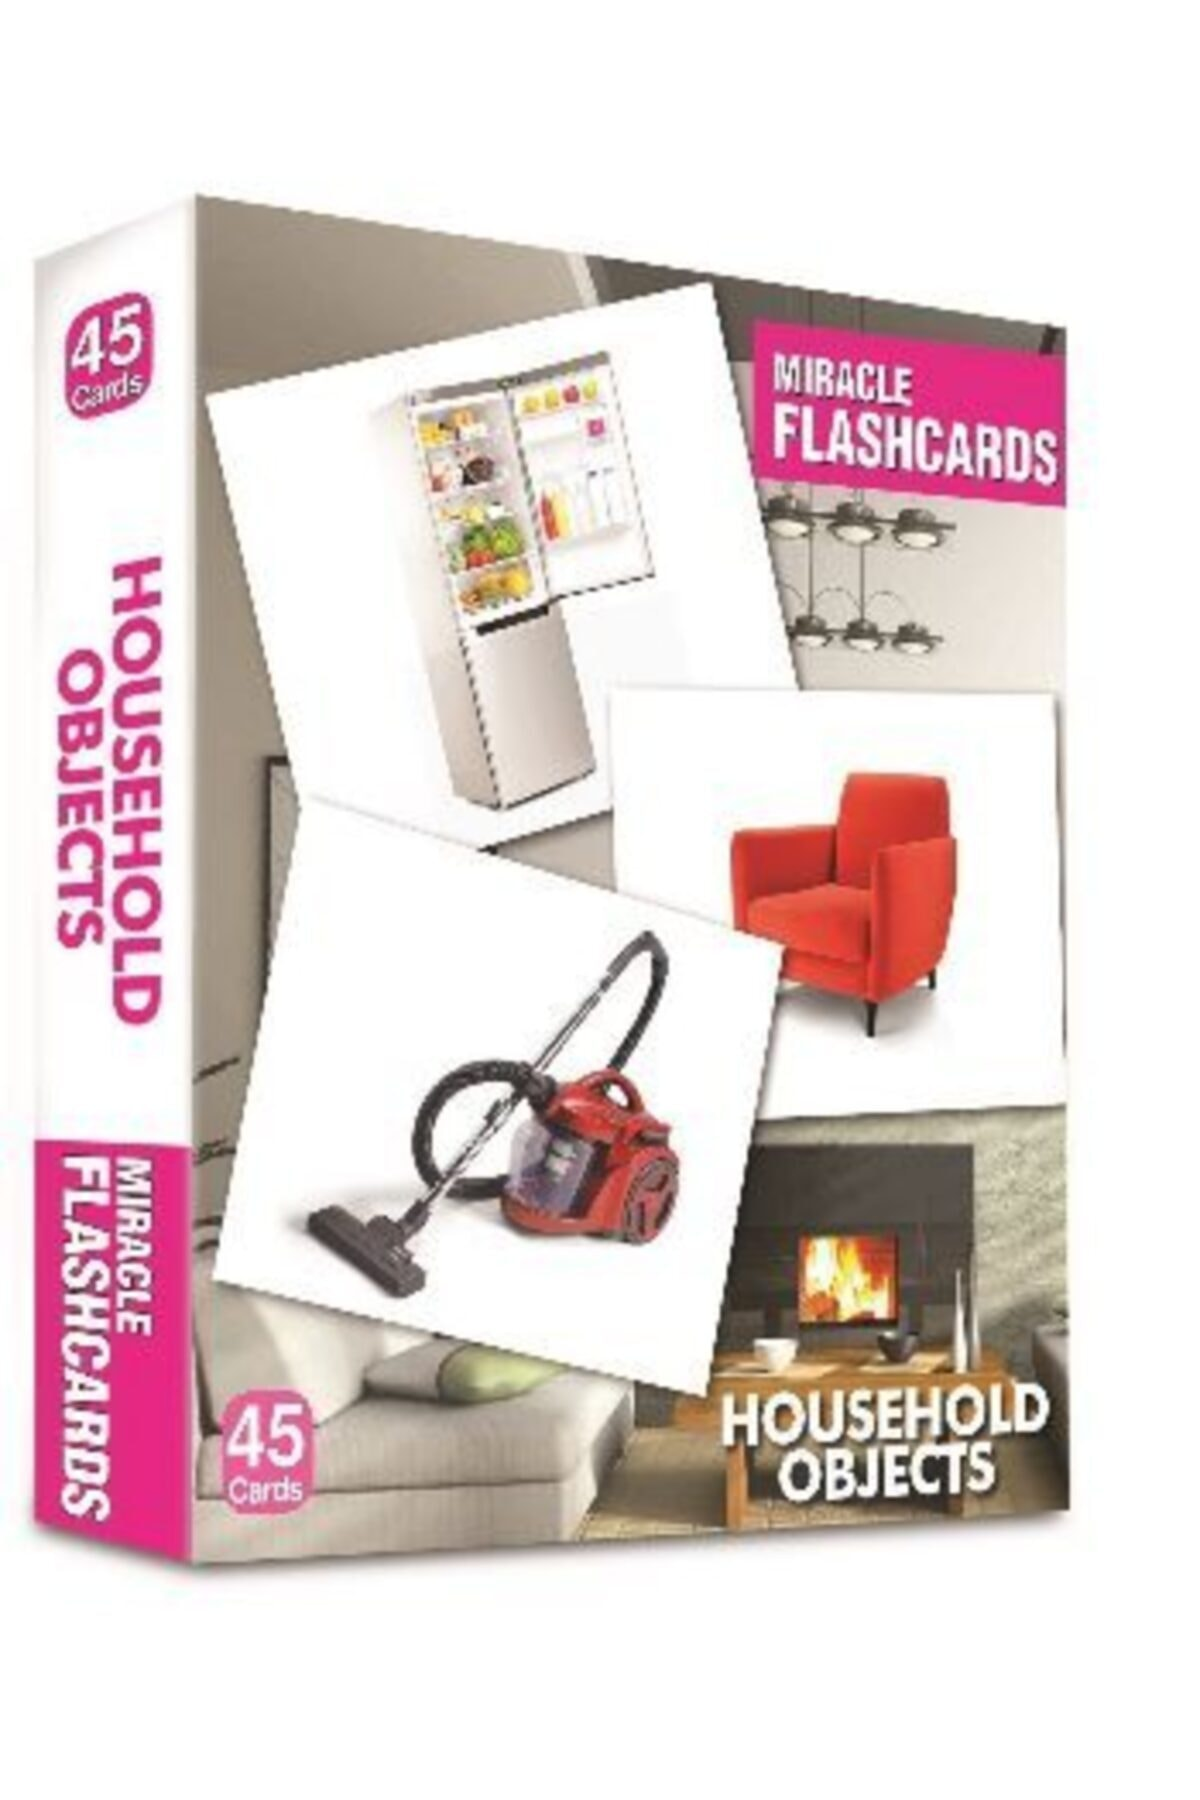 Miracle Flashcards Household-objects 45 Cards